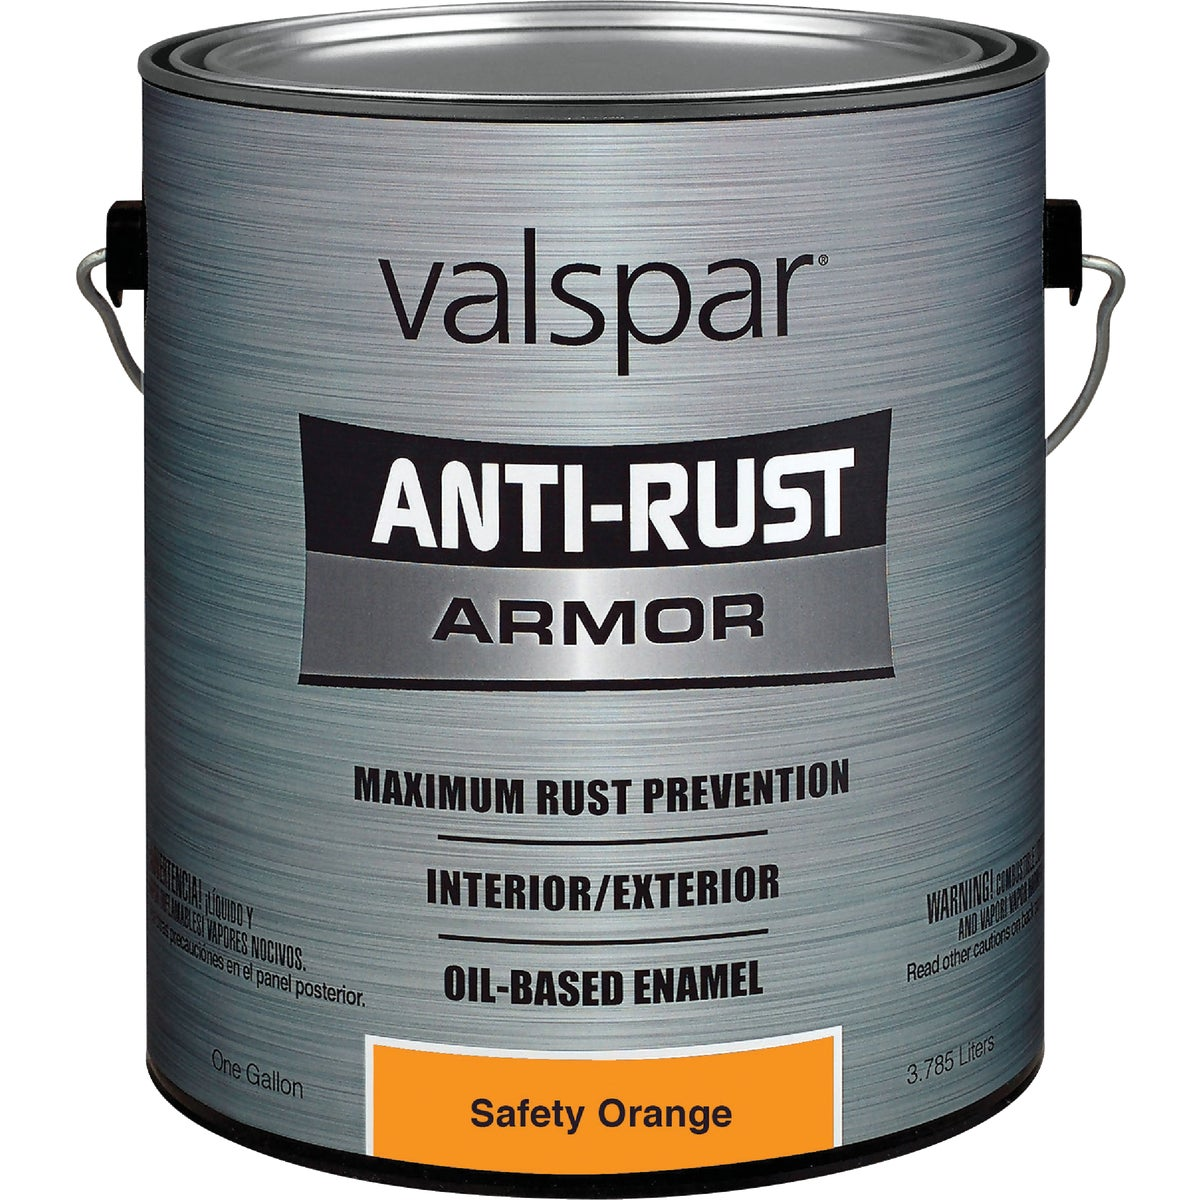 SAFETY ORNG RUST ENAMEL - 044.0021837.007 by Valspar Corp